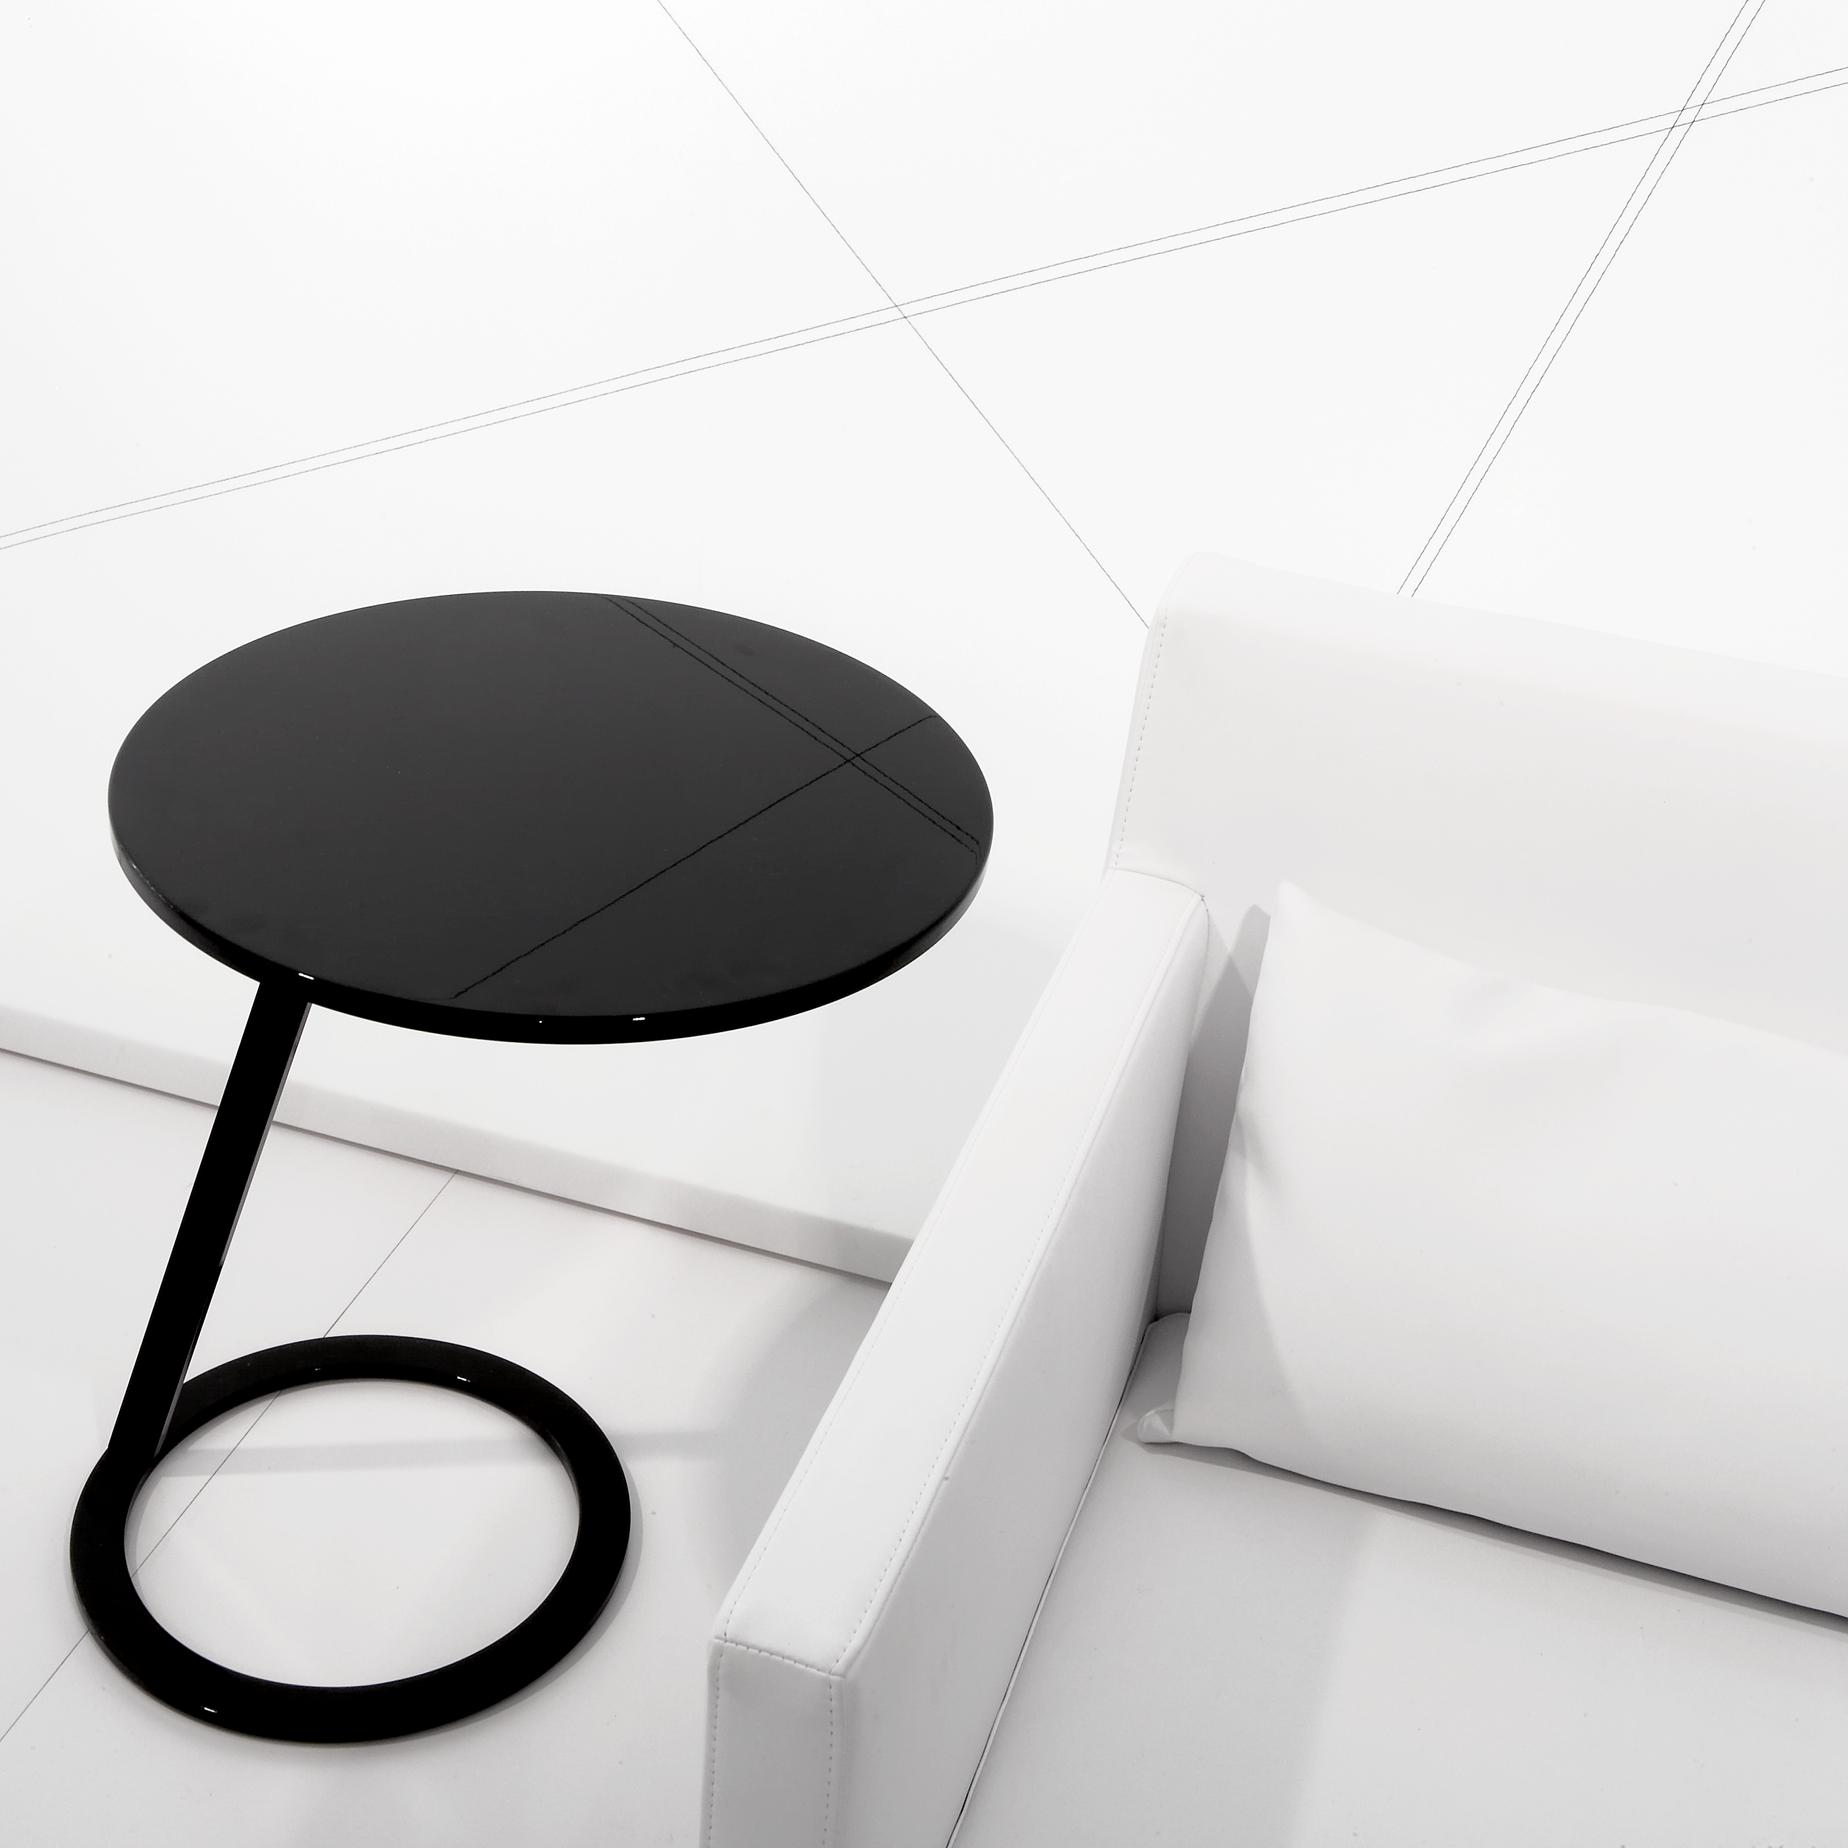 good morning occasional tables from designer alban sebastien black lacquer accent table gilles ligne roset official site coffee ideas retro vintage sofa knotty pine end iron navy